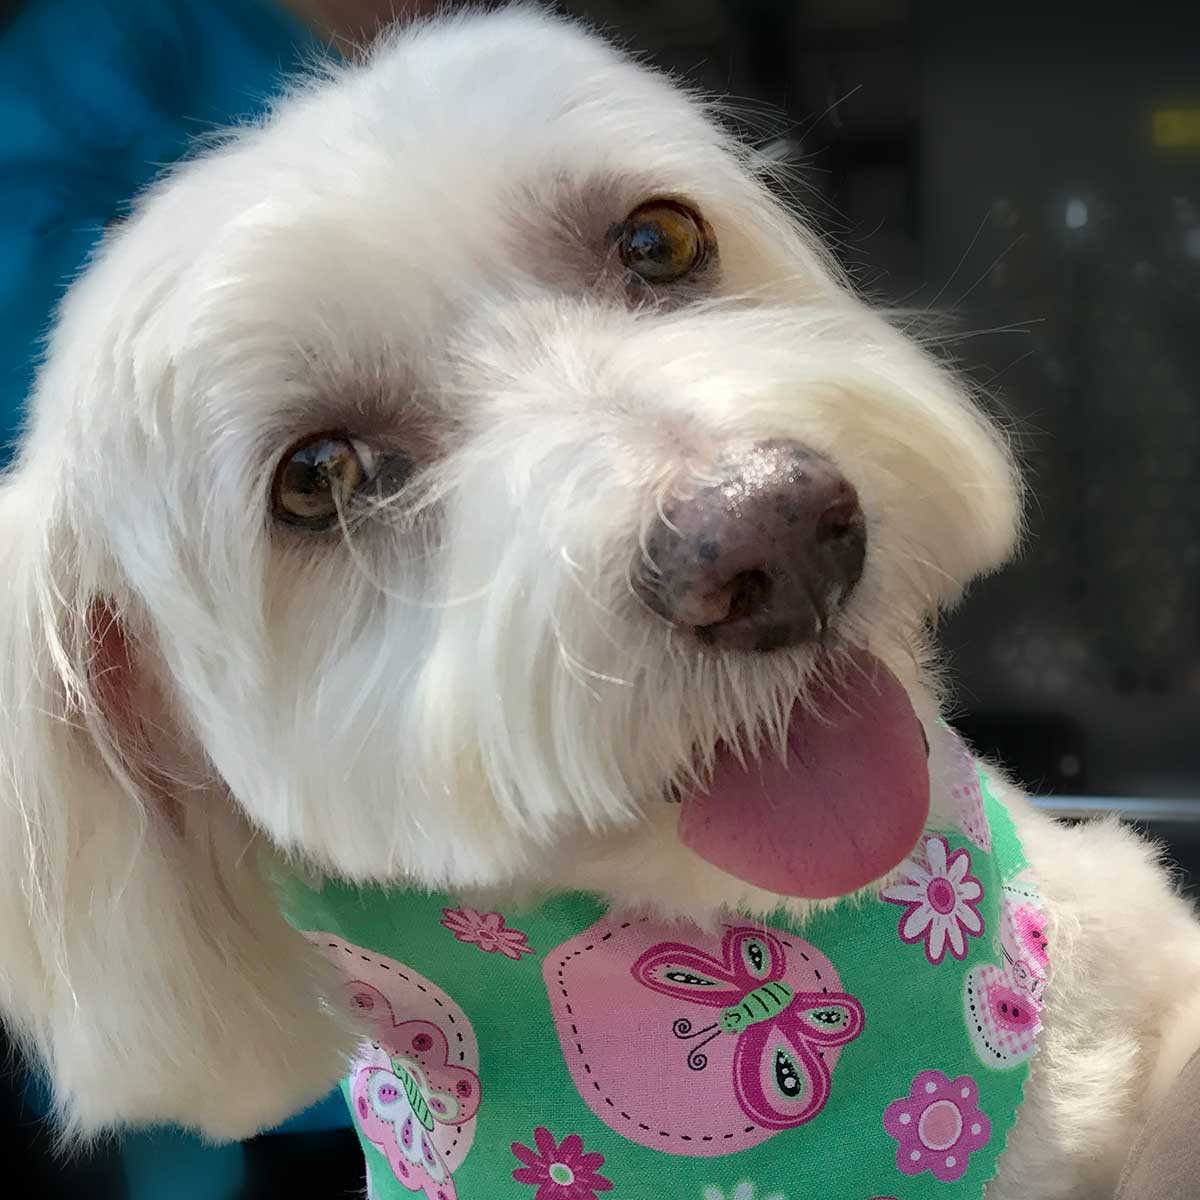 Bichon Frise, Maltese and Havanese Mix, named Willow with pretty brown eyes, wearing a green butterfly bandana.